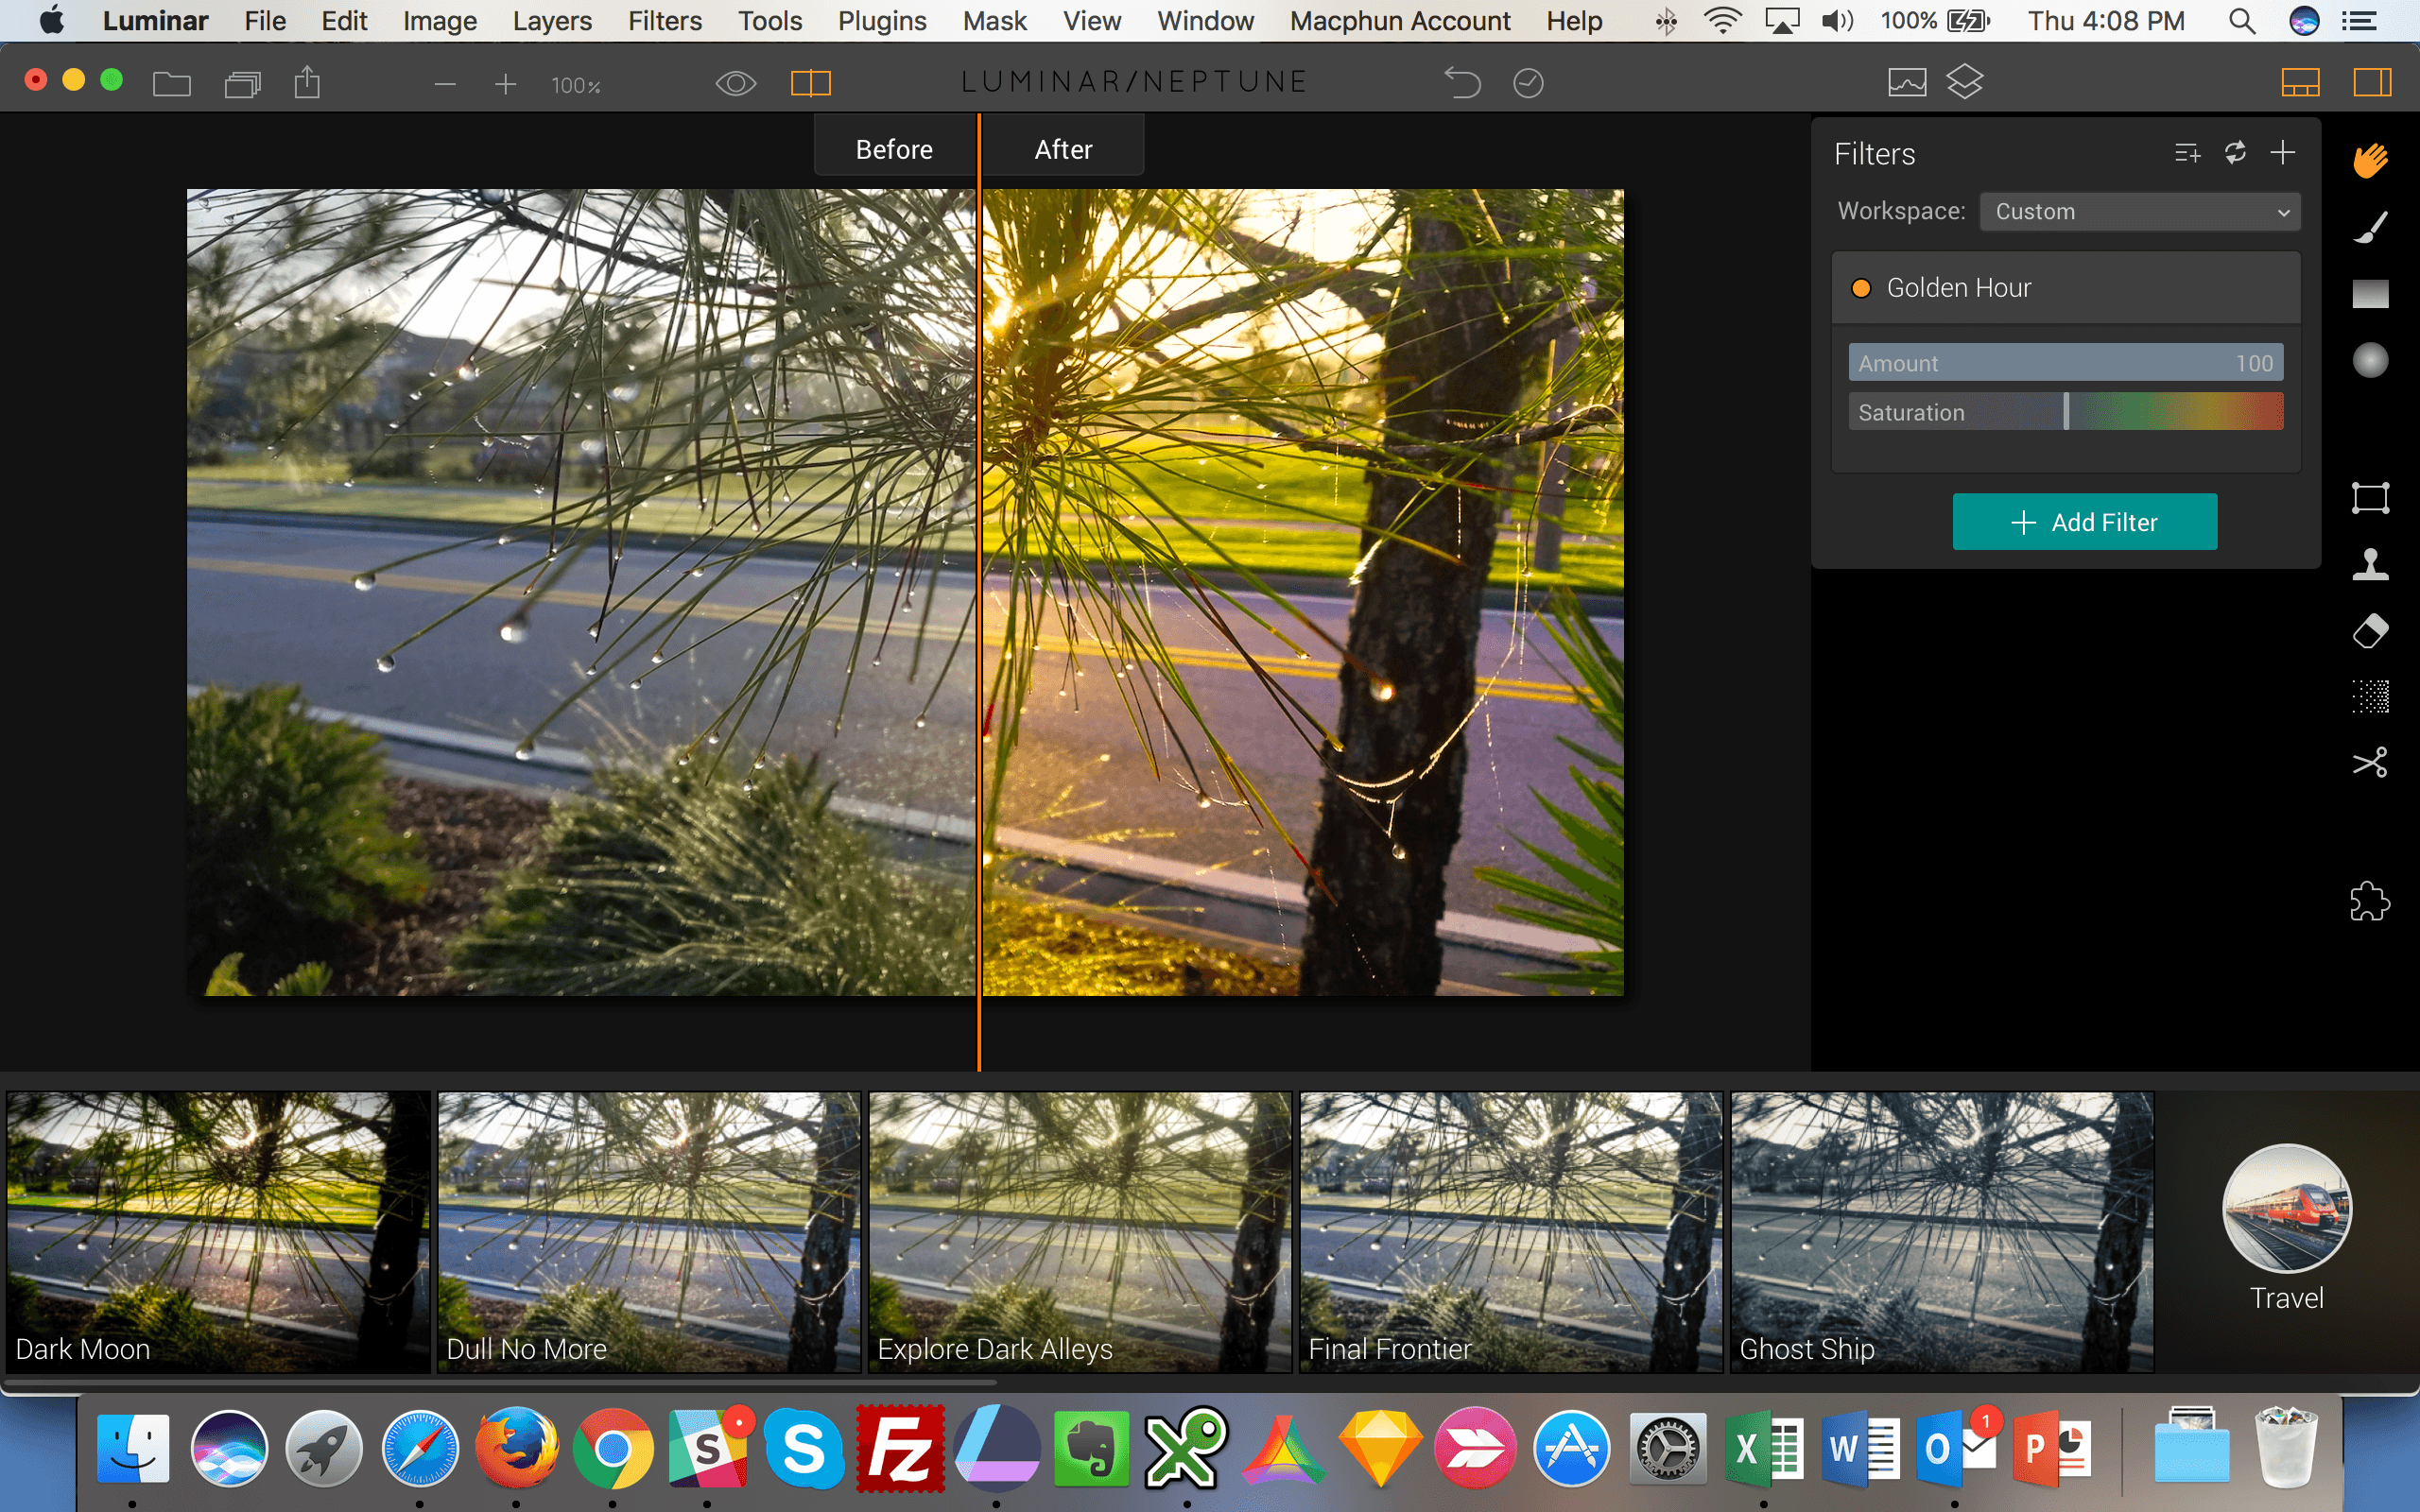 Luminar Before and After - Golden Hour Filter